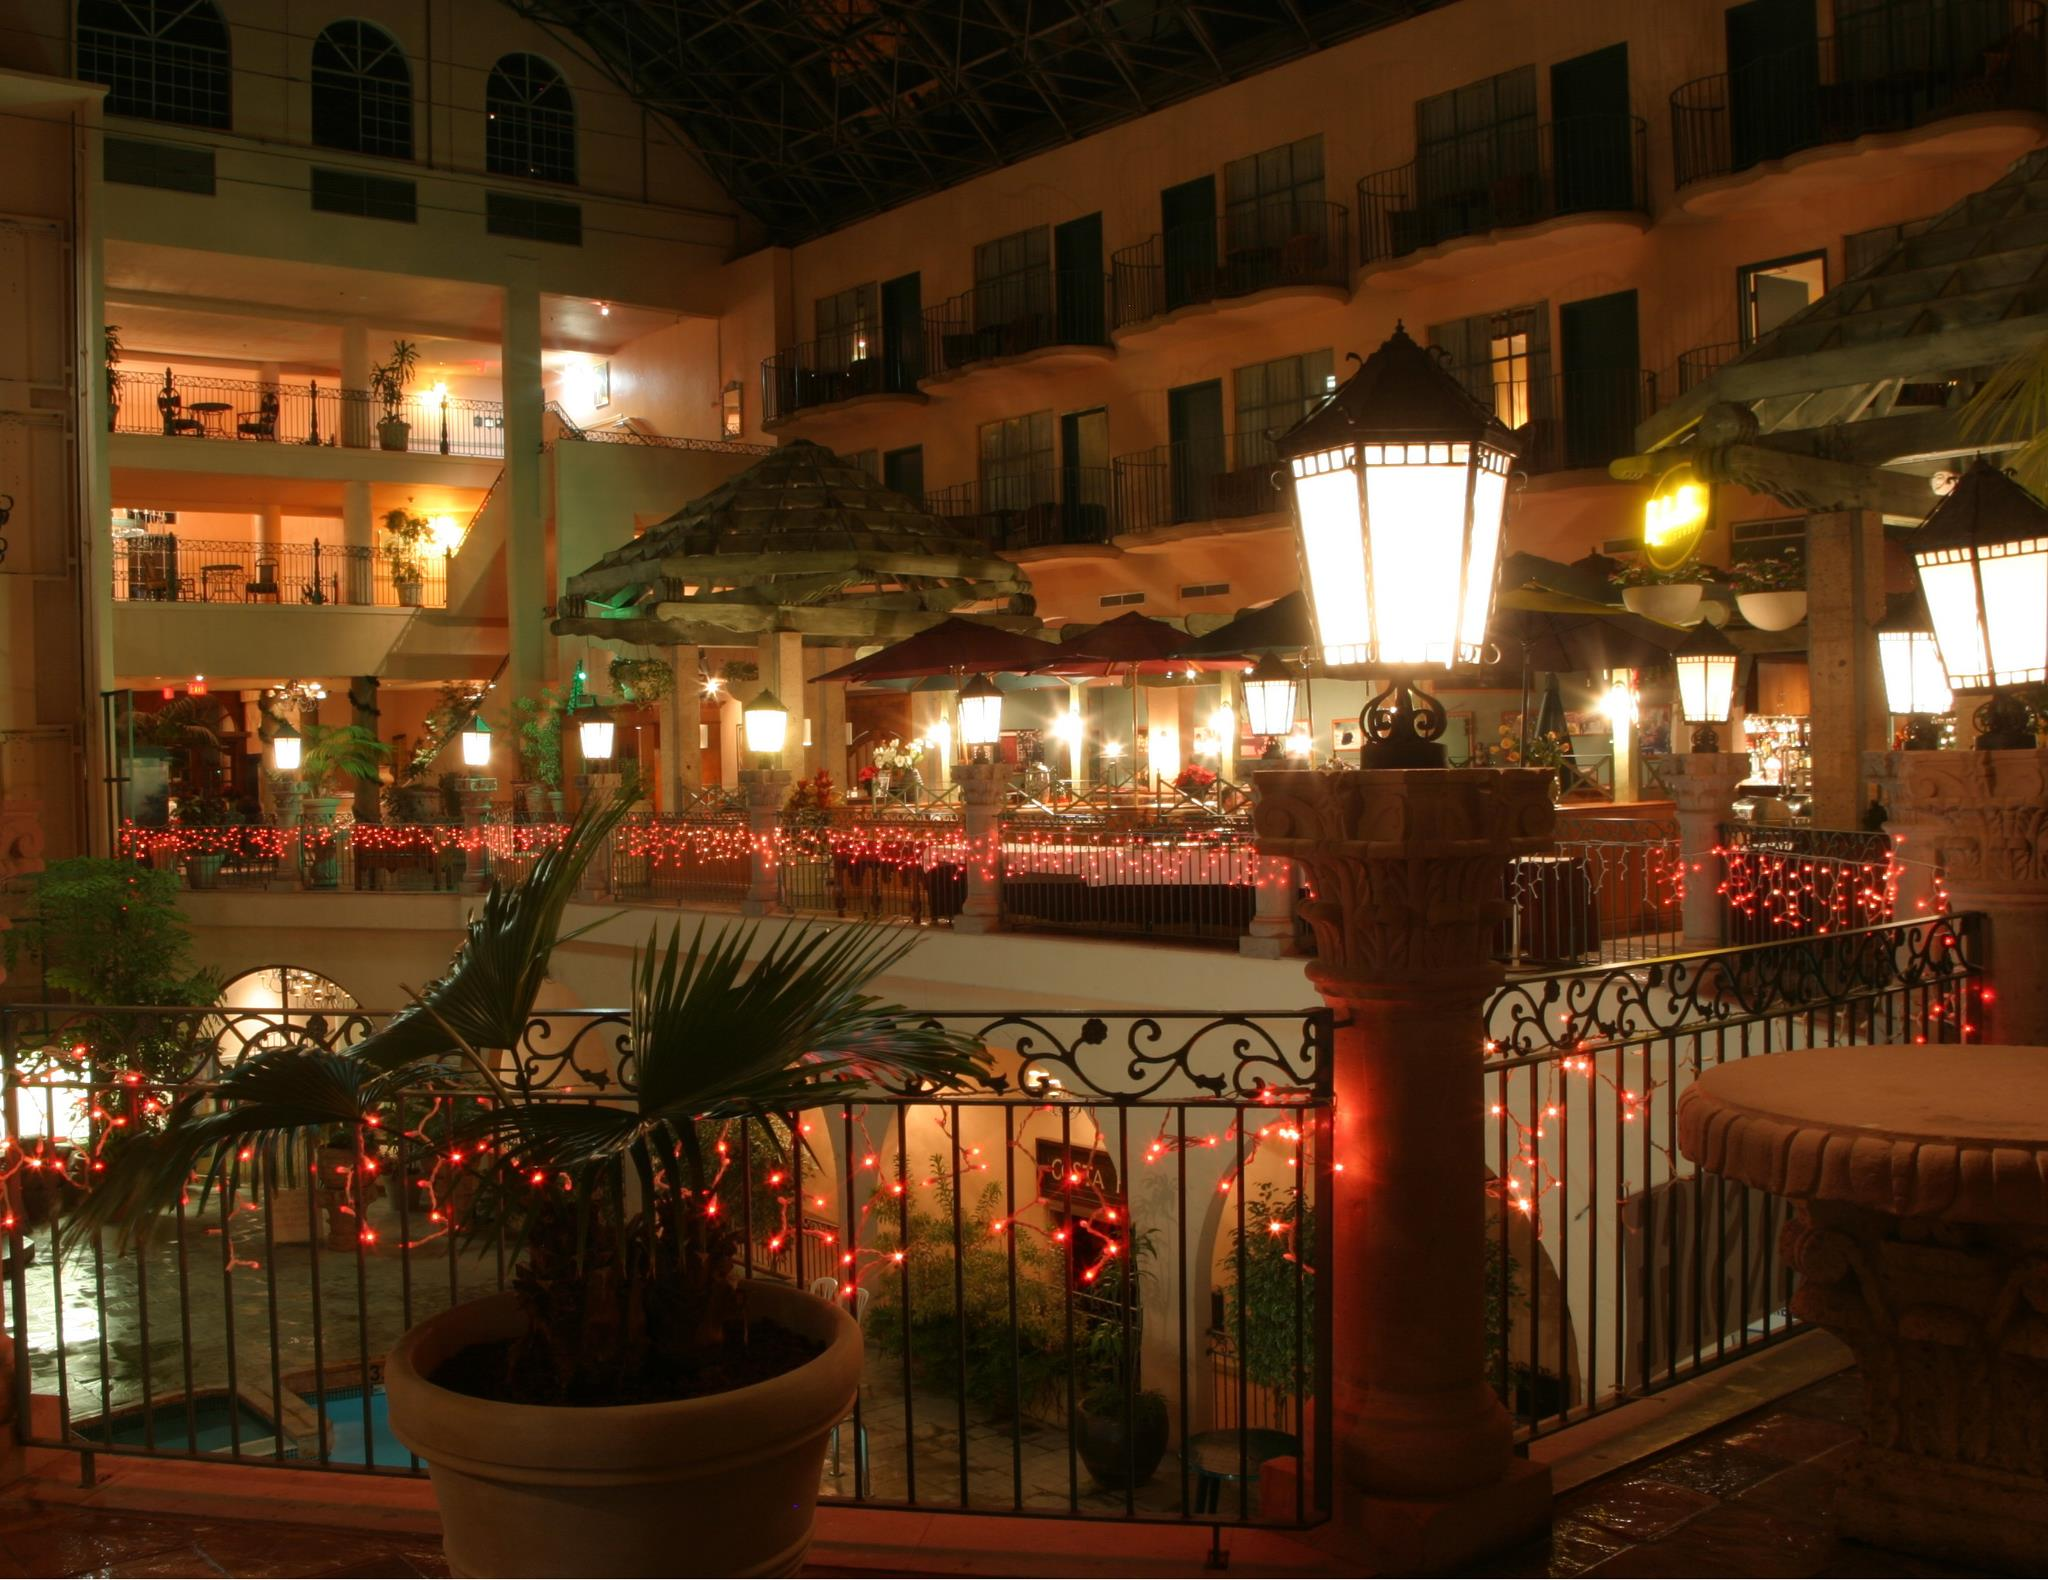 inside the Pacific Inn Resort